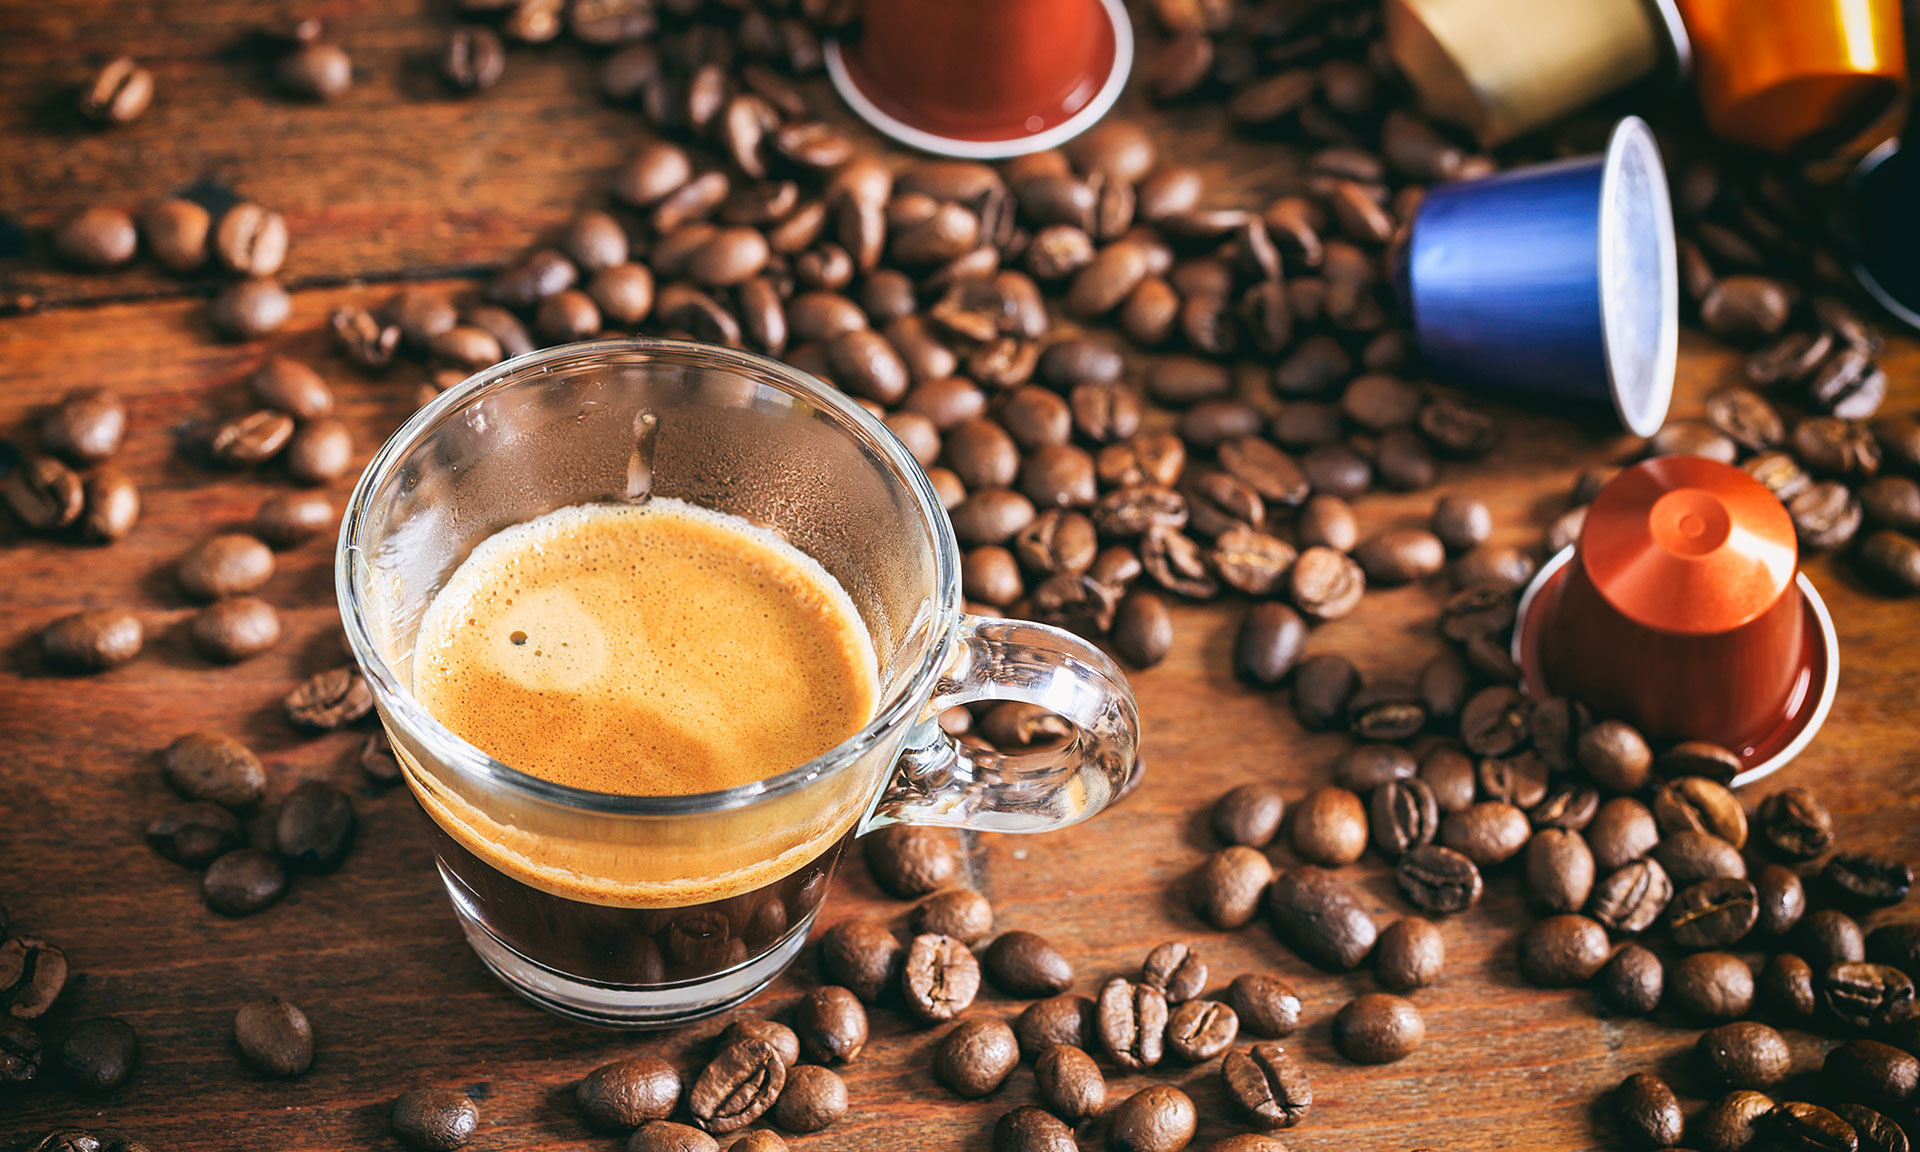 nespresso corporate background essay Read this essay on backgrounder come browse our large digital warehouse of free sample essays get the knowledge you need in order to pass your classes and more.